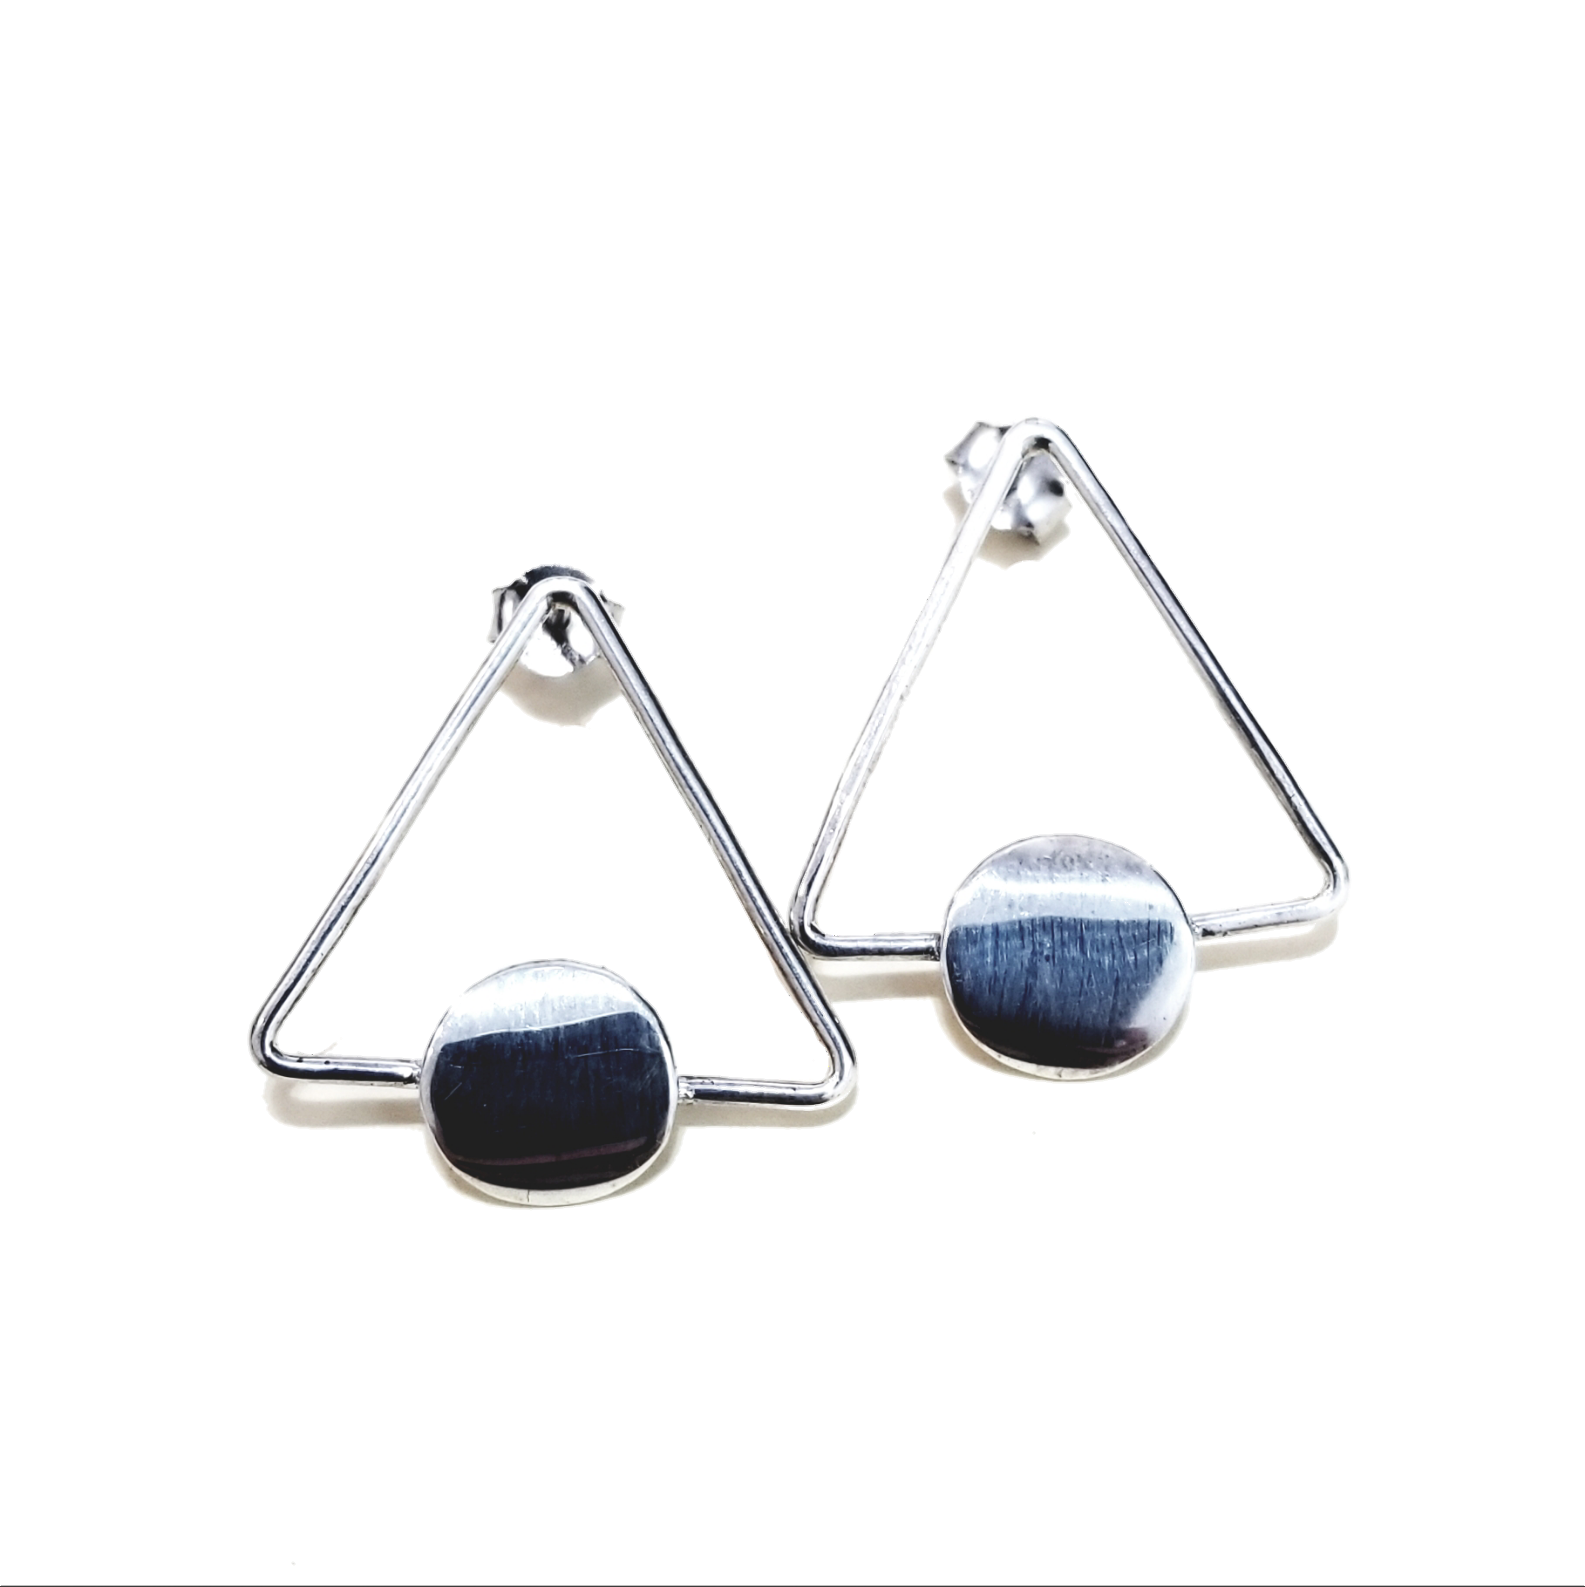 Triangular gemotric earrings in silver